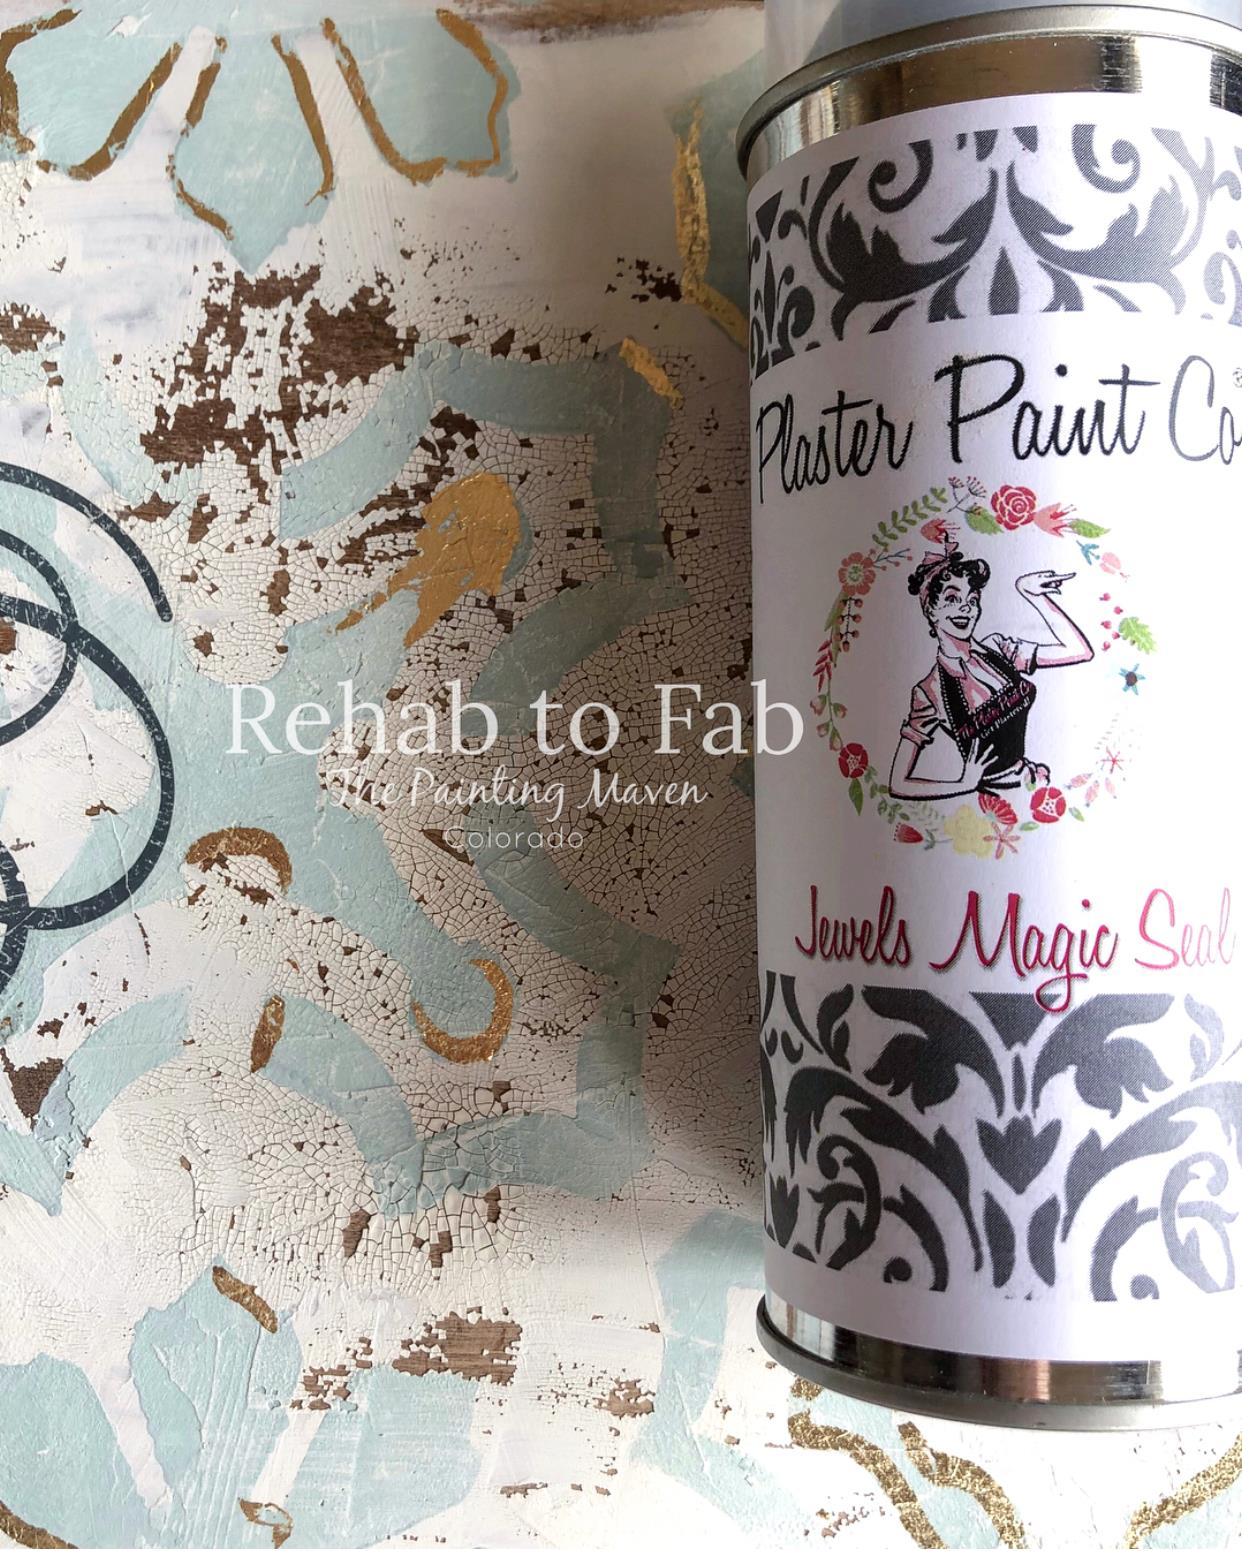 Stephanie then added a spray sealer by the Plaster Paint Company called Jewels Magic Sealer.